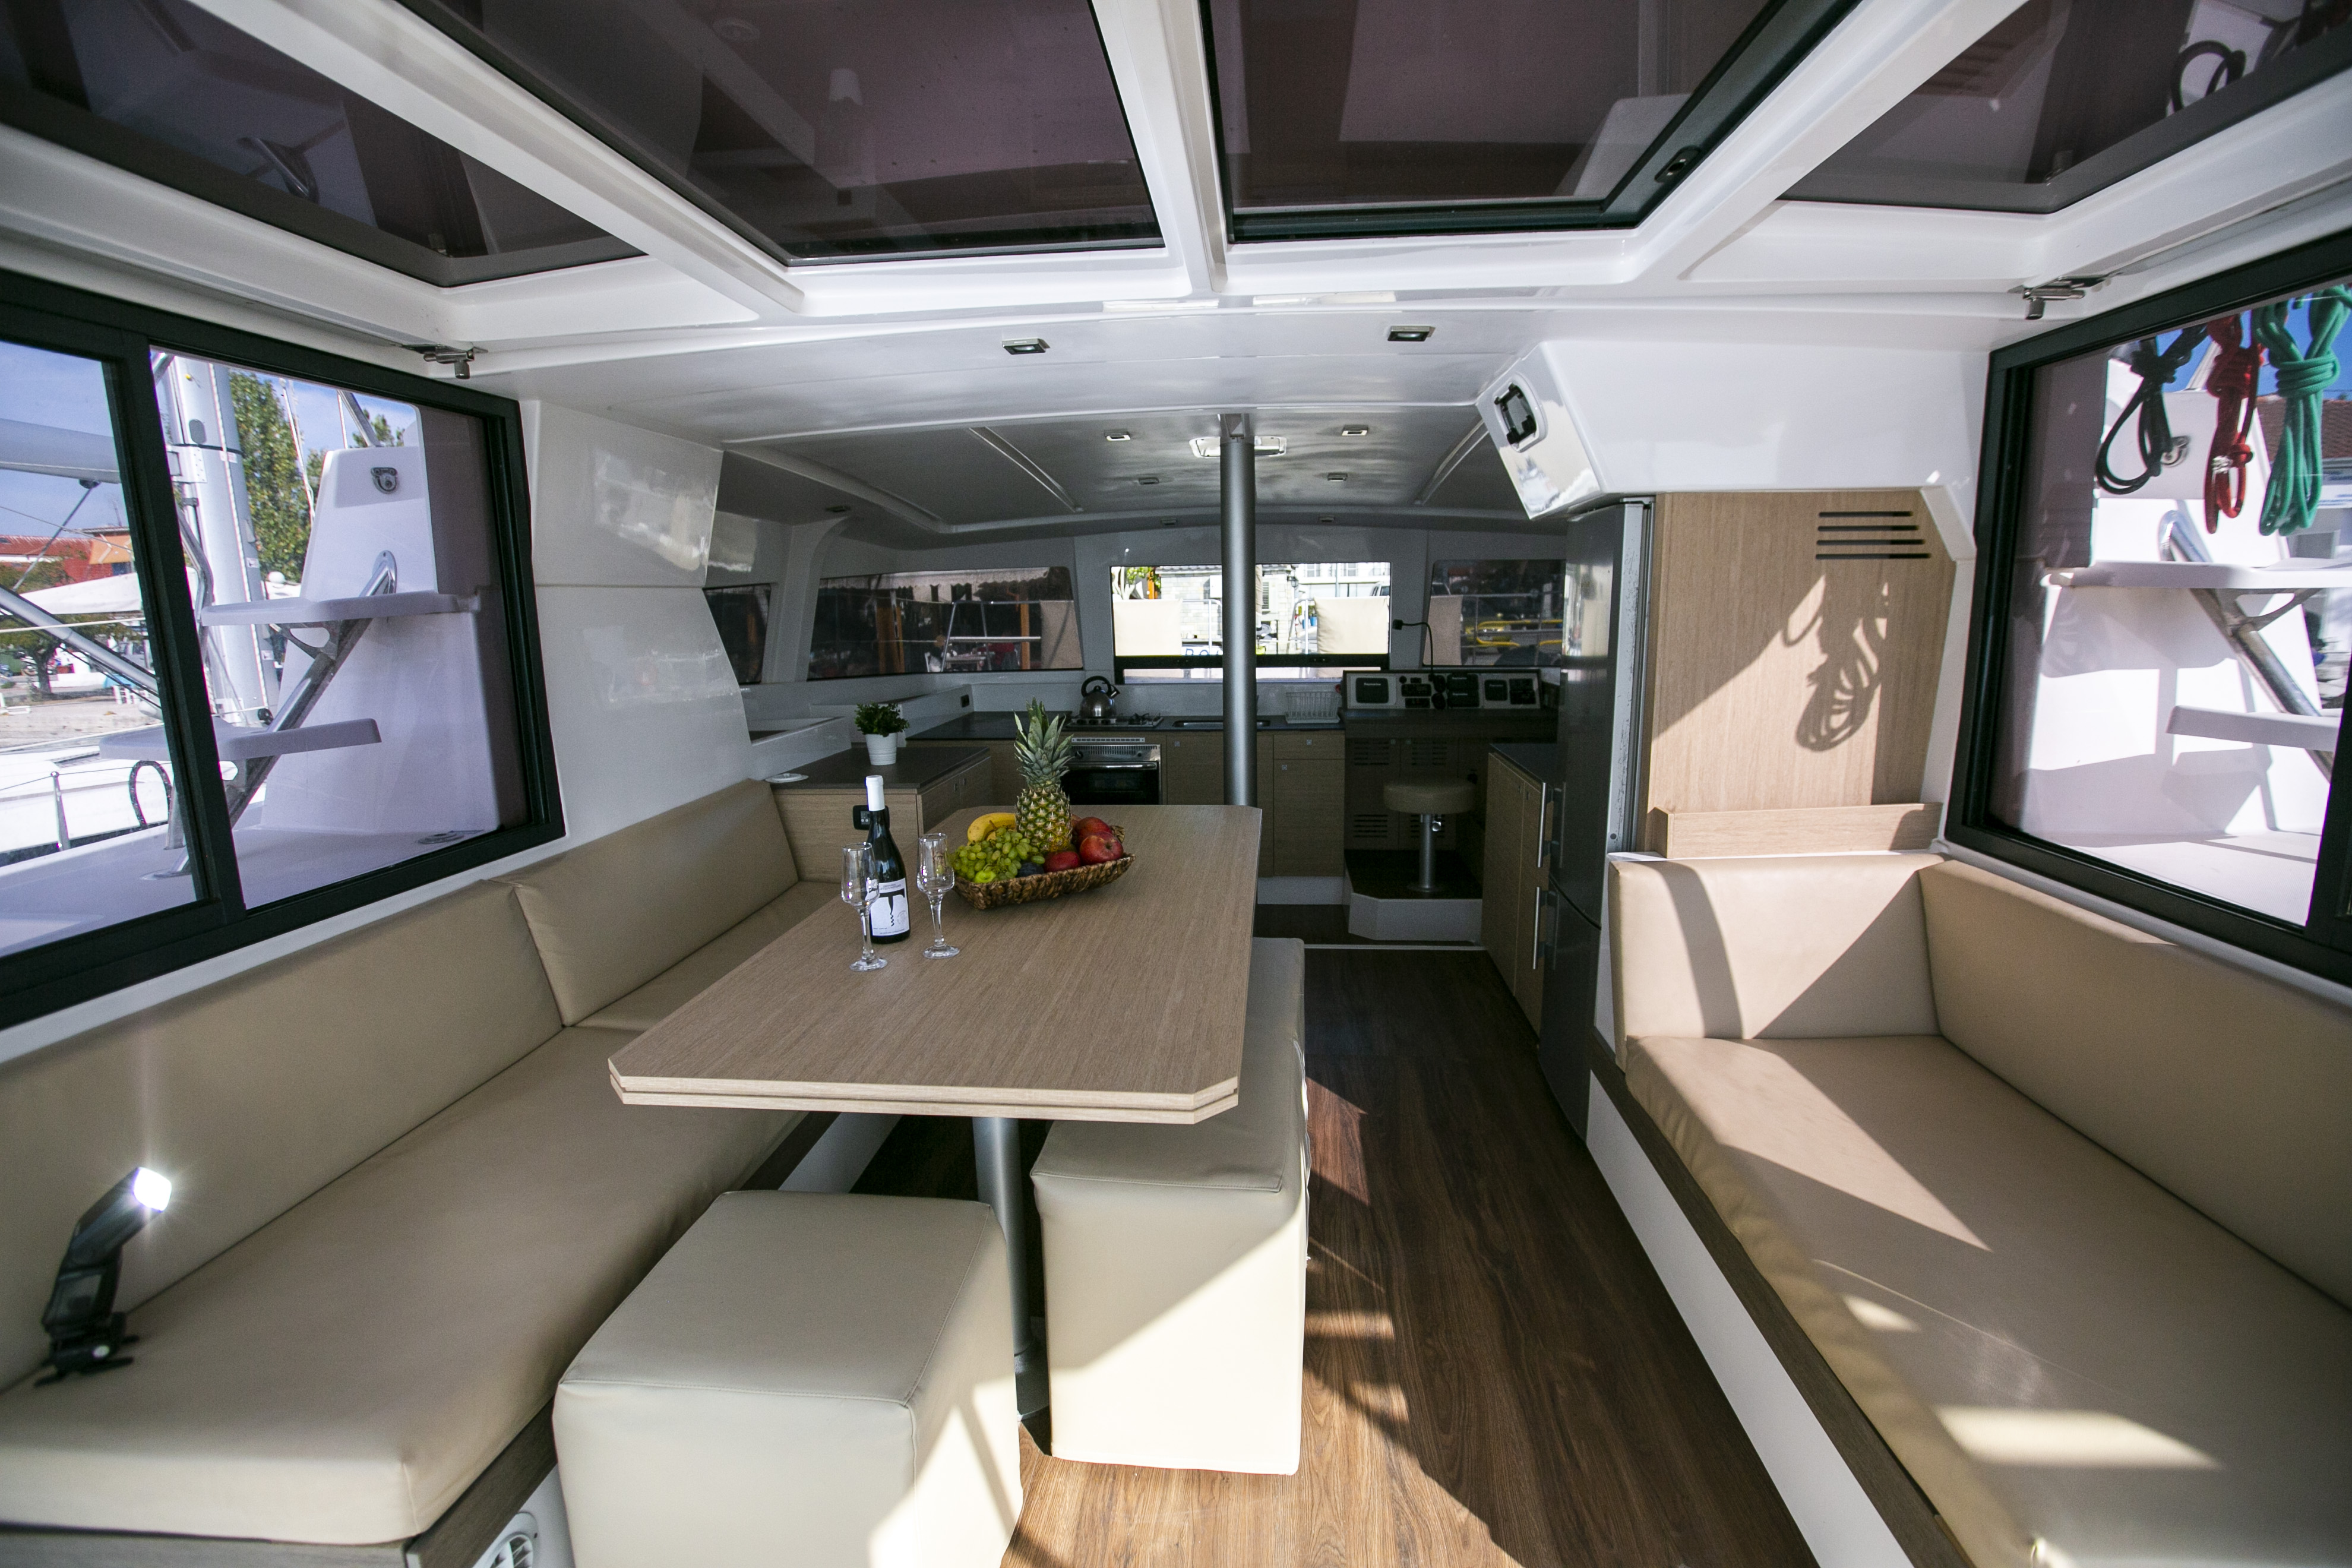 Bali 4.0 (Blue Dream II / with air-condition, generator & watermaker) Interior image - 6